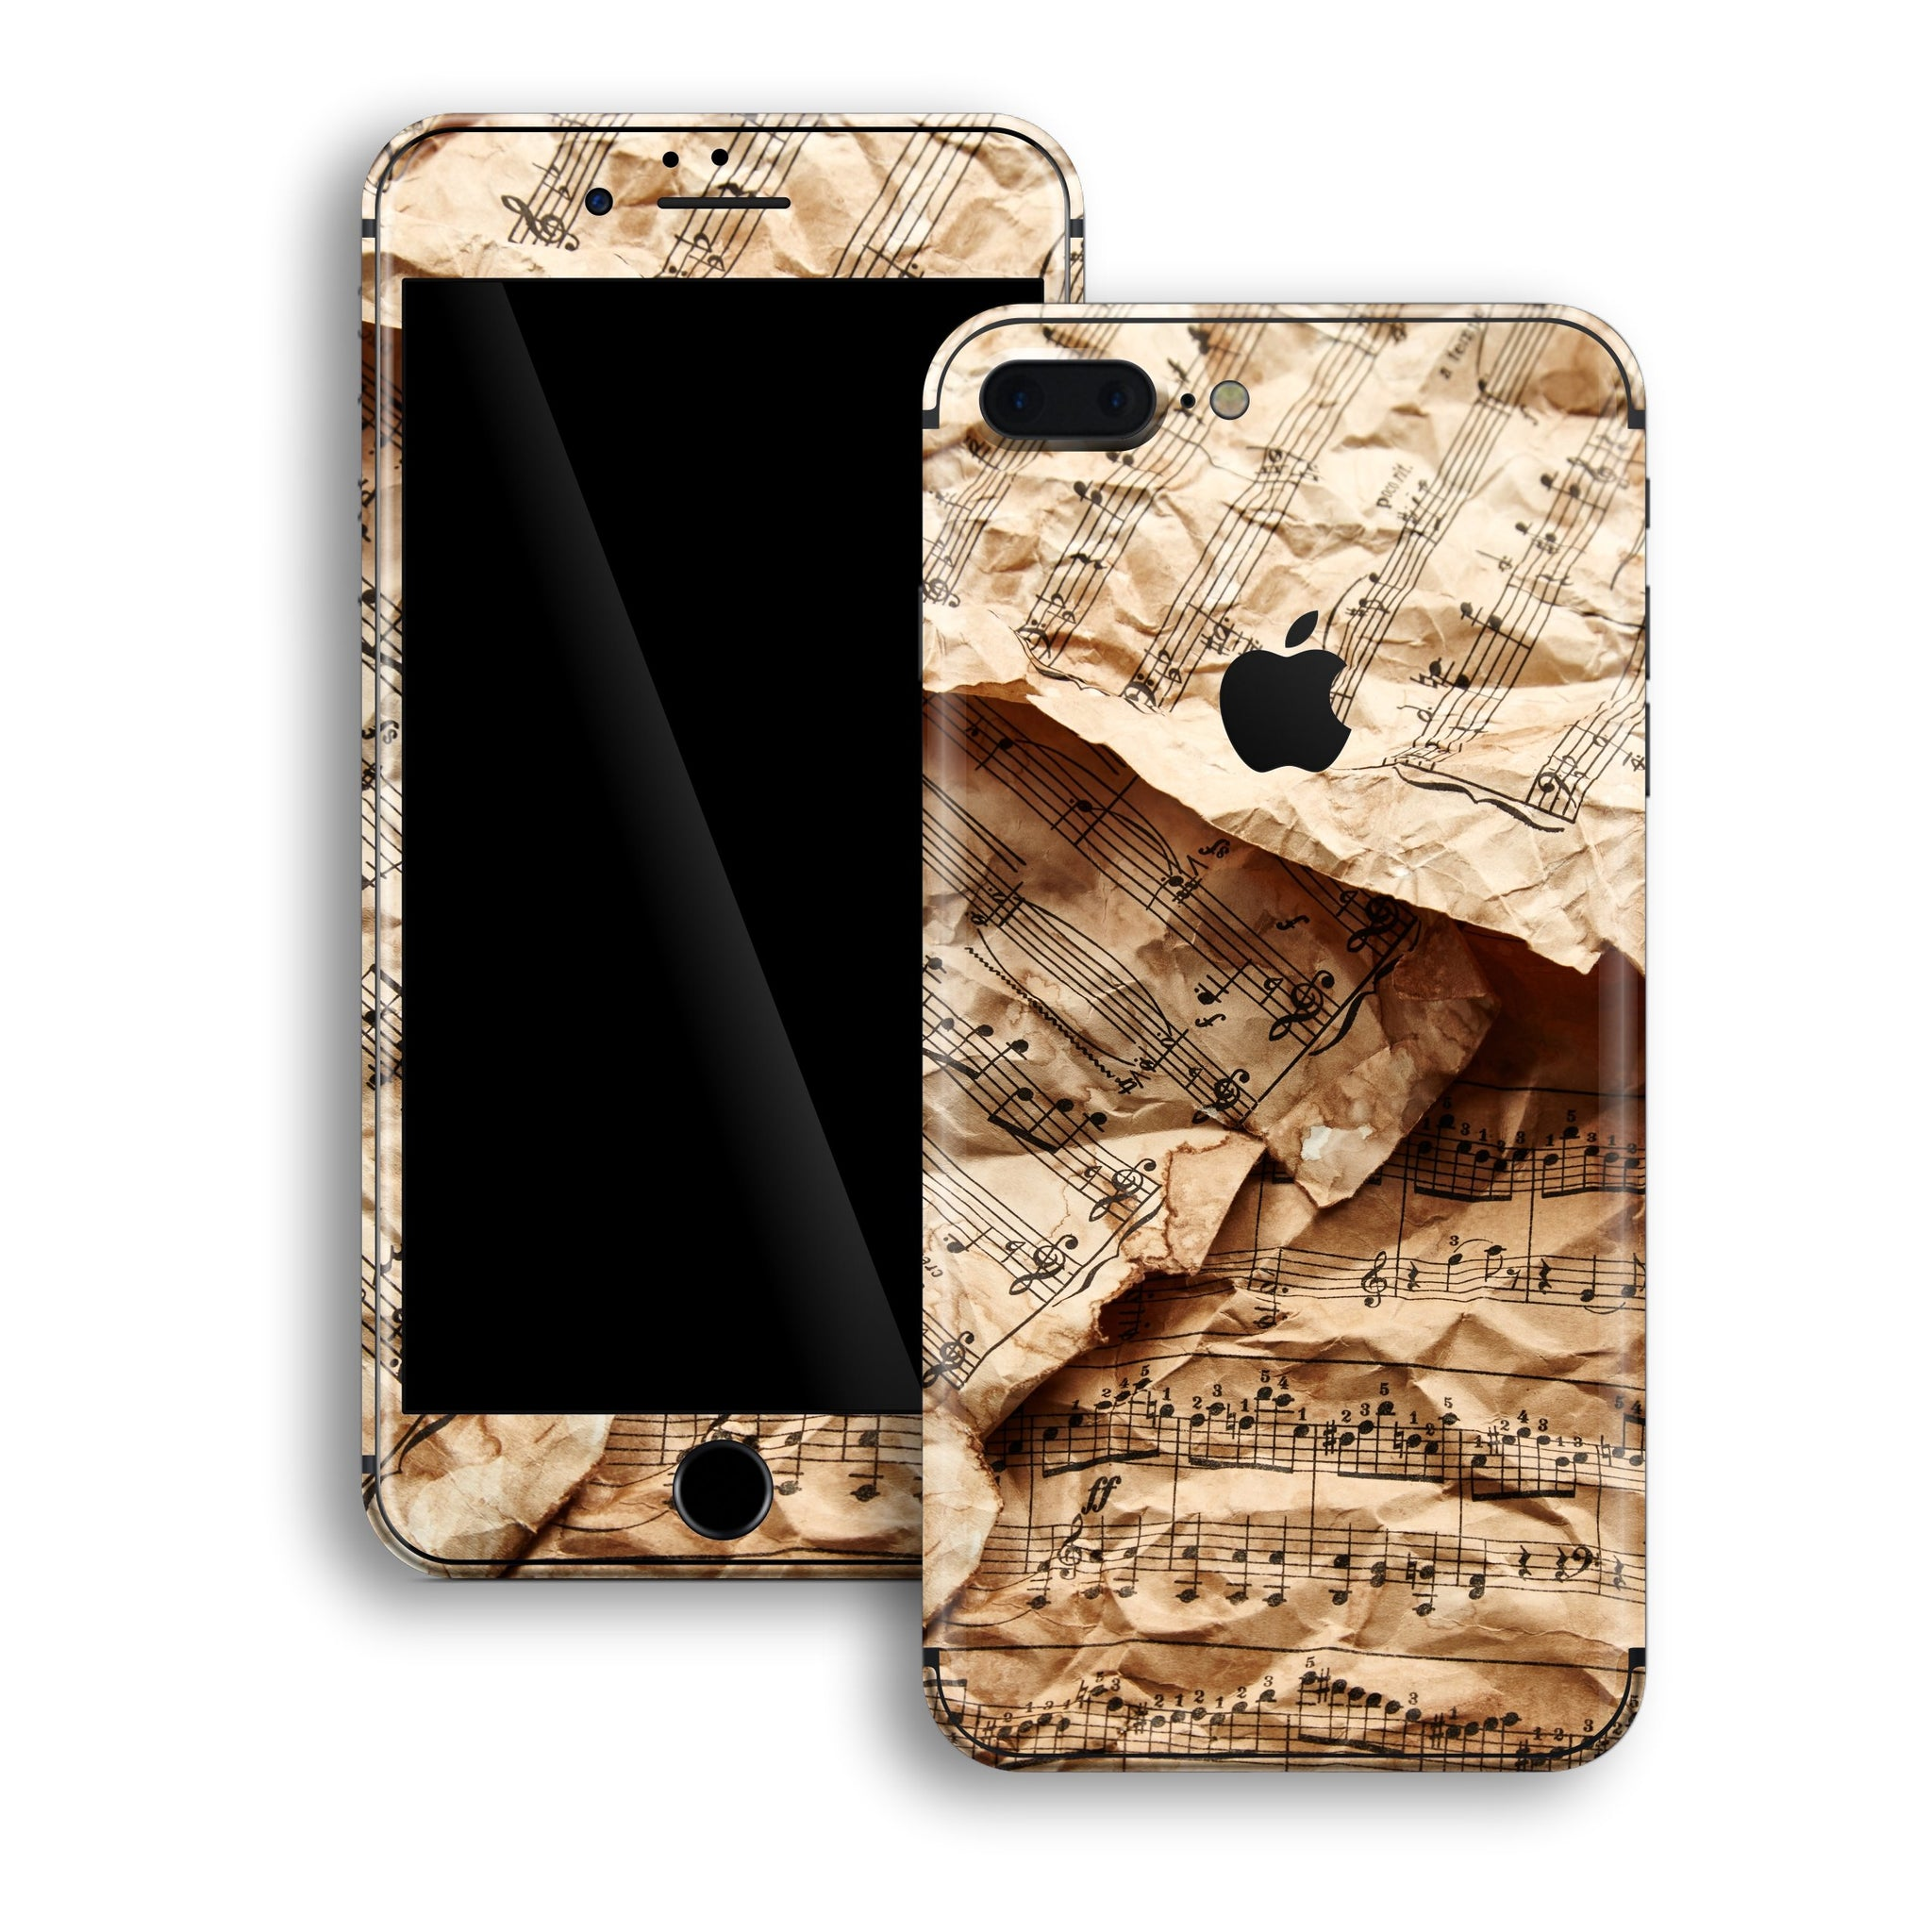 iPhone 8 PLUS Print Custom Signature Music Paper Notes Skin Wrap Decal by EasySkinz